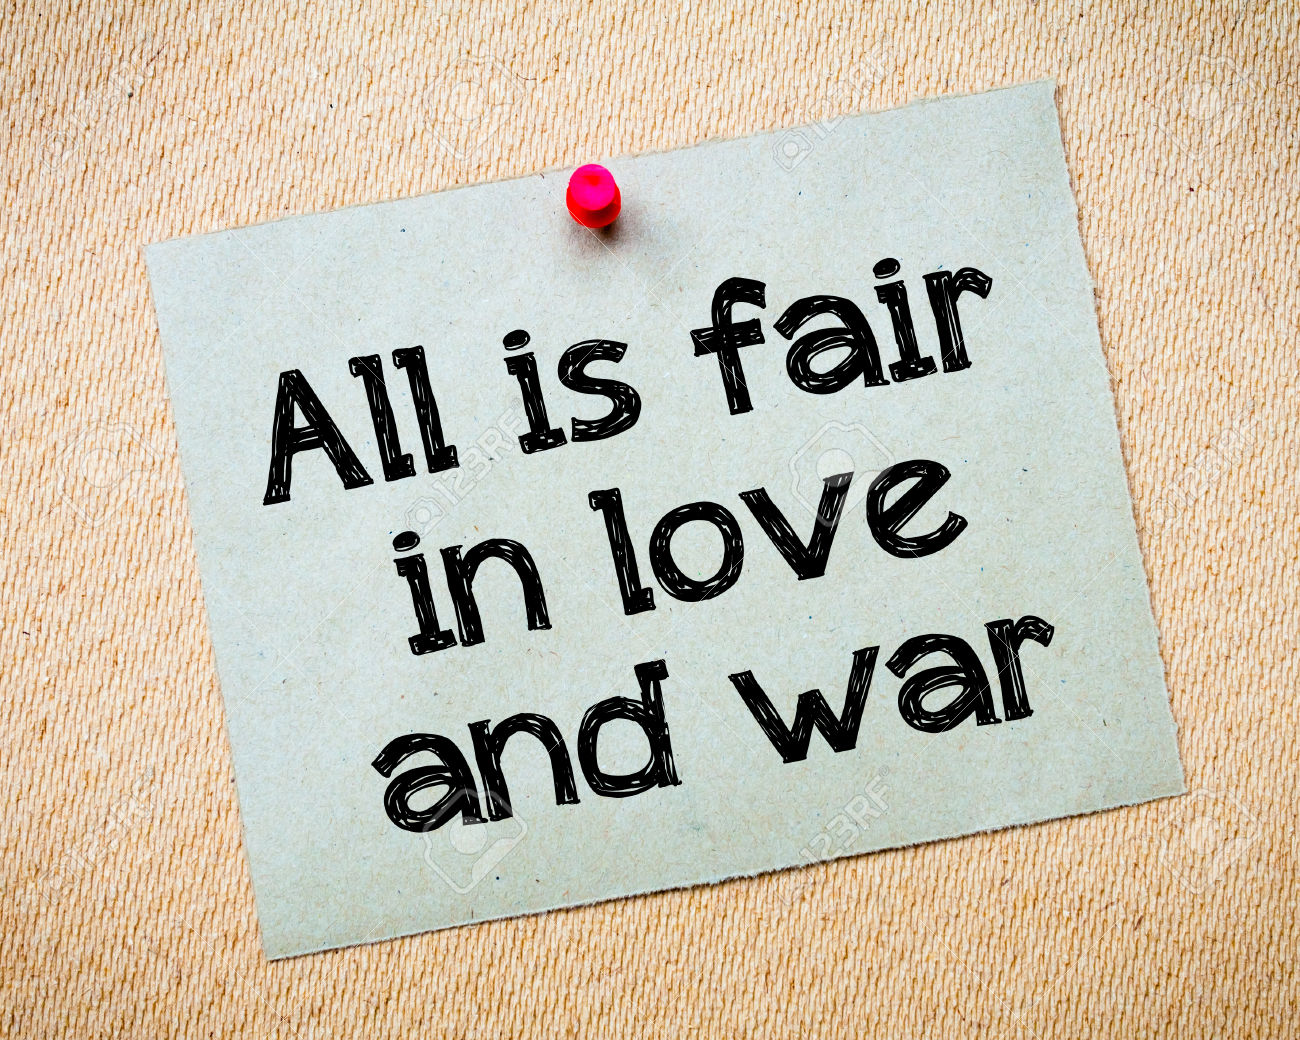 Who said all's fair in love and war